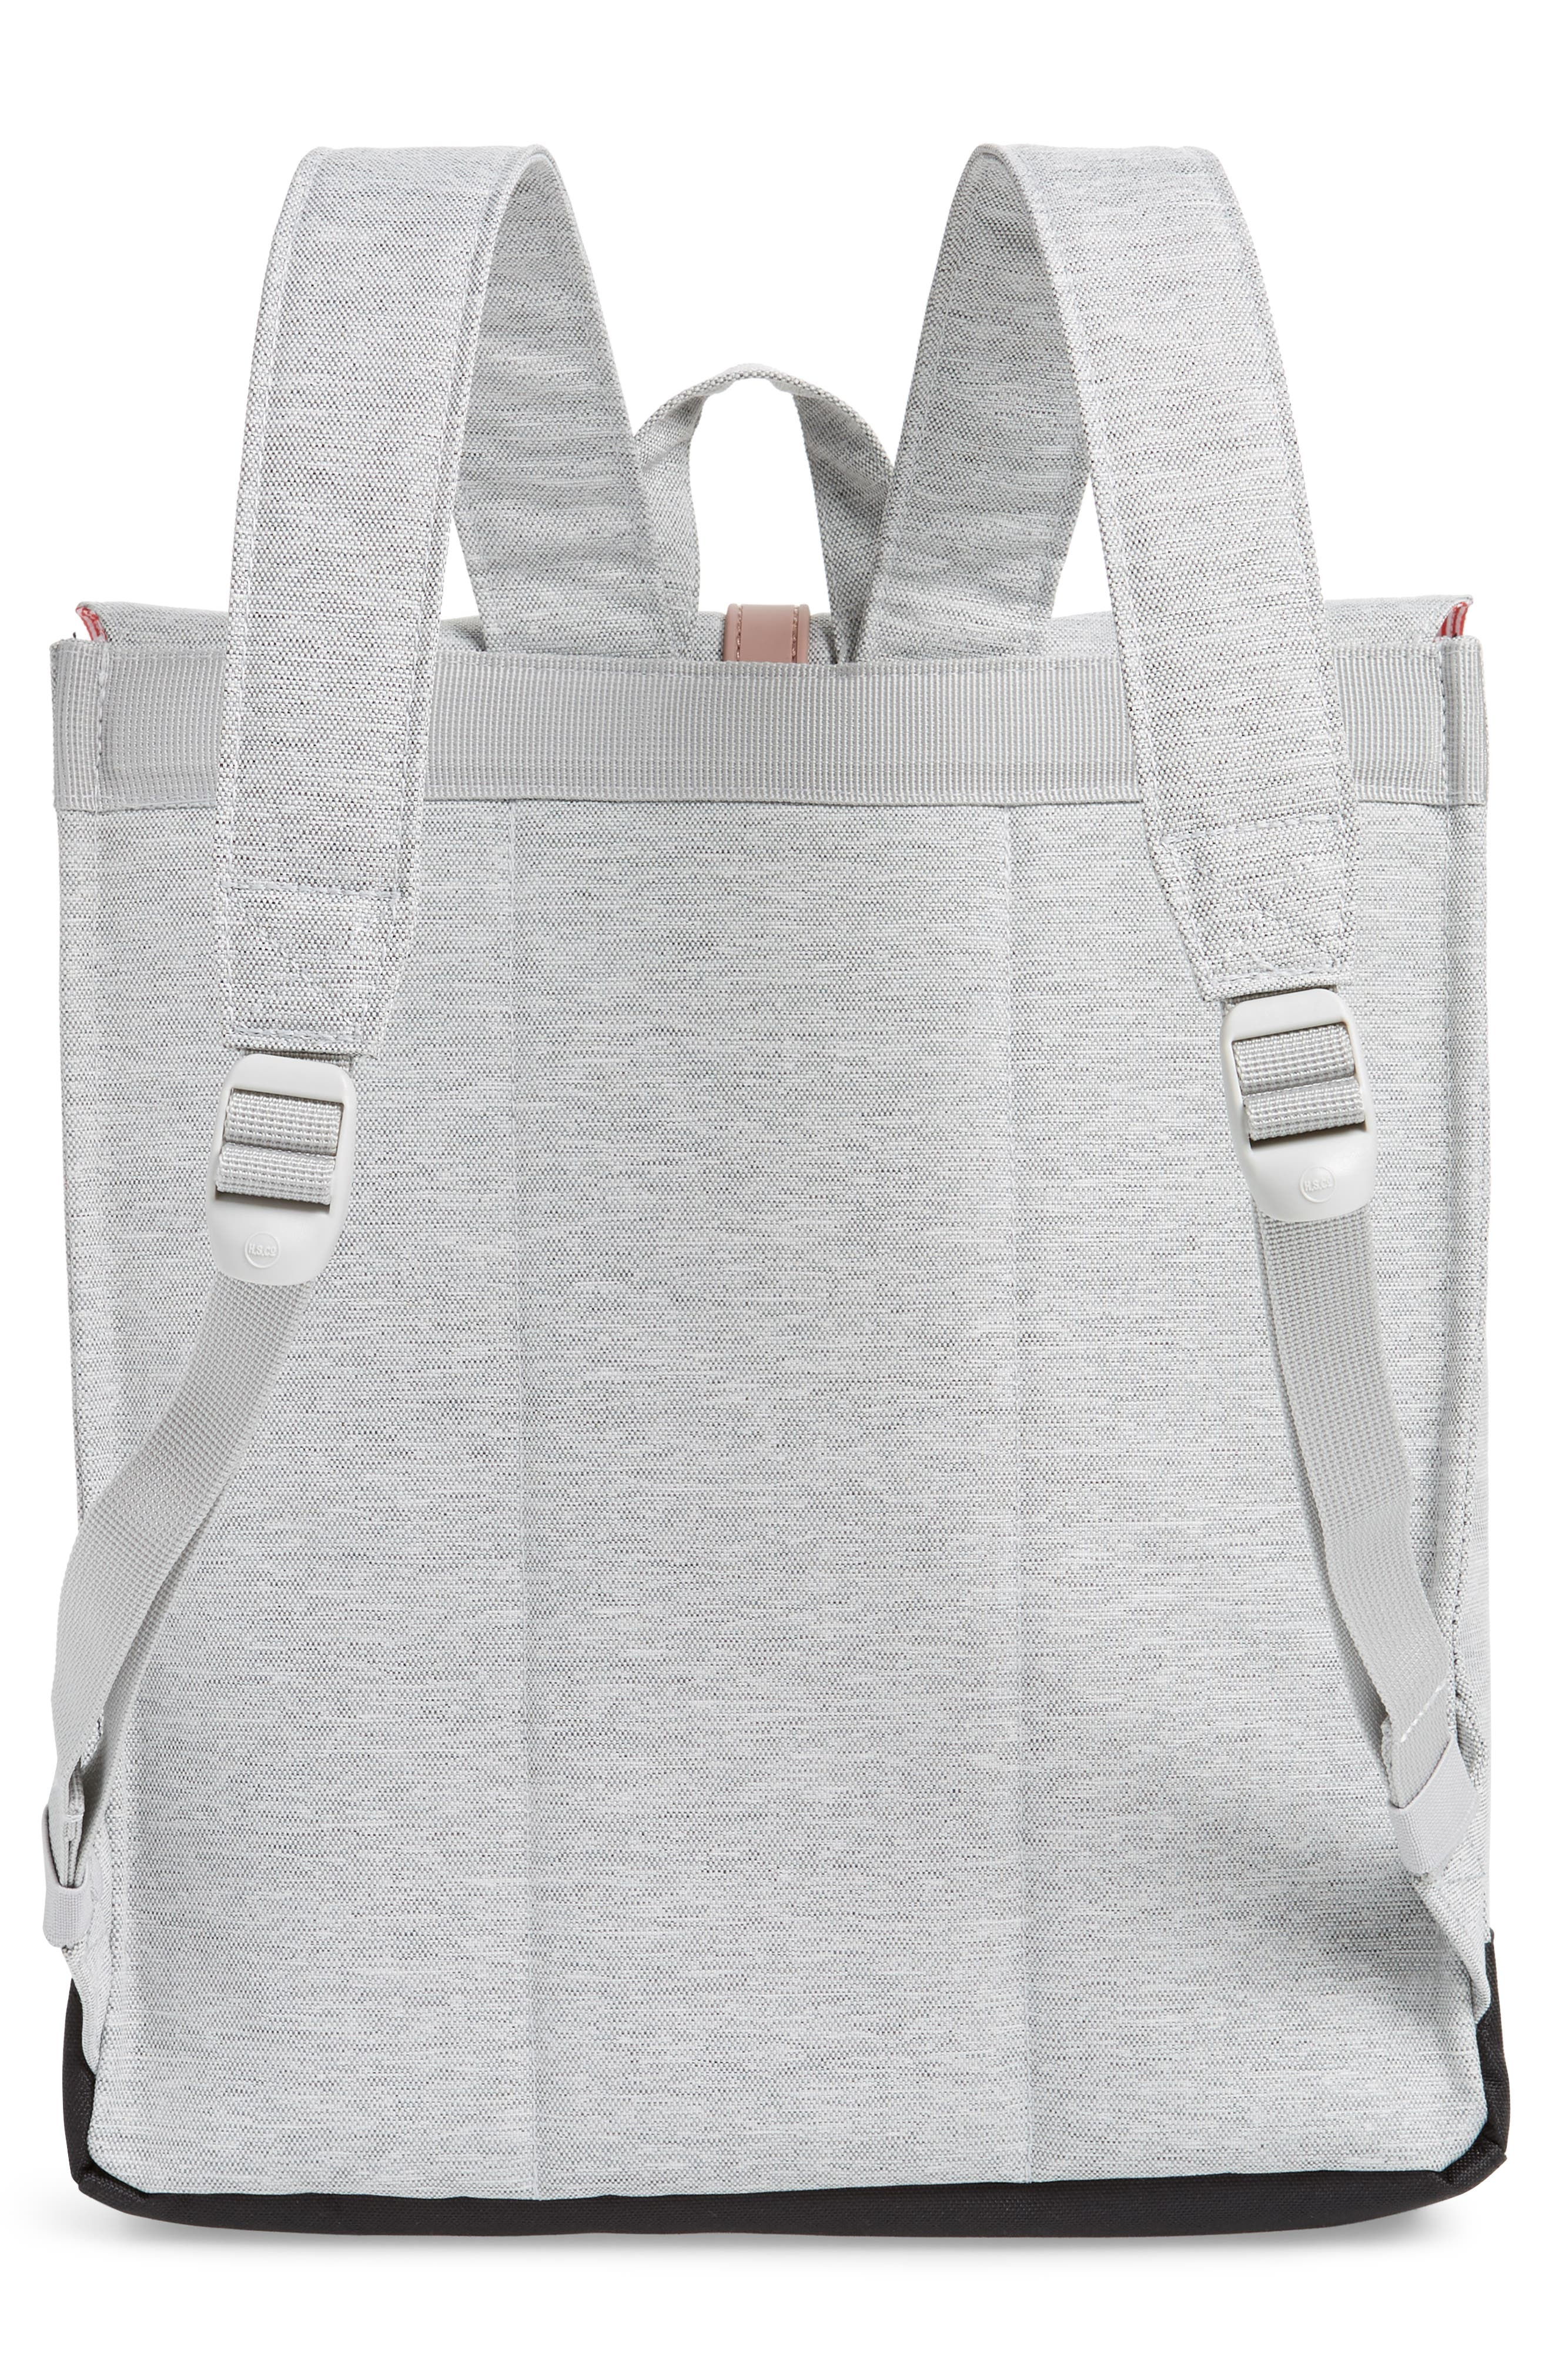 'City - Mid Volume' Backpack,                             Alternate thumbnail 3, color,                             024